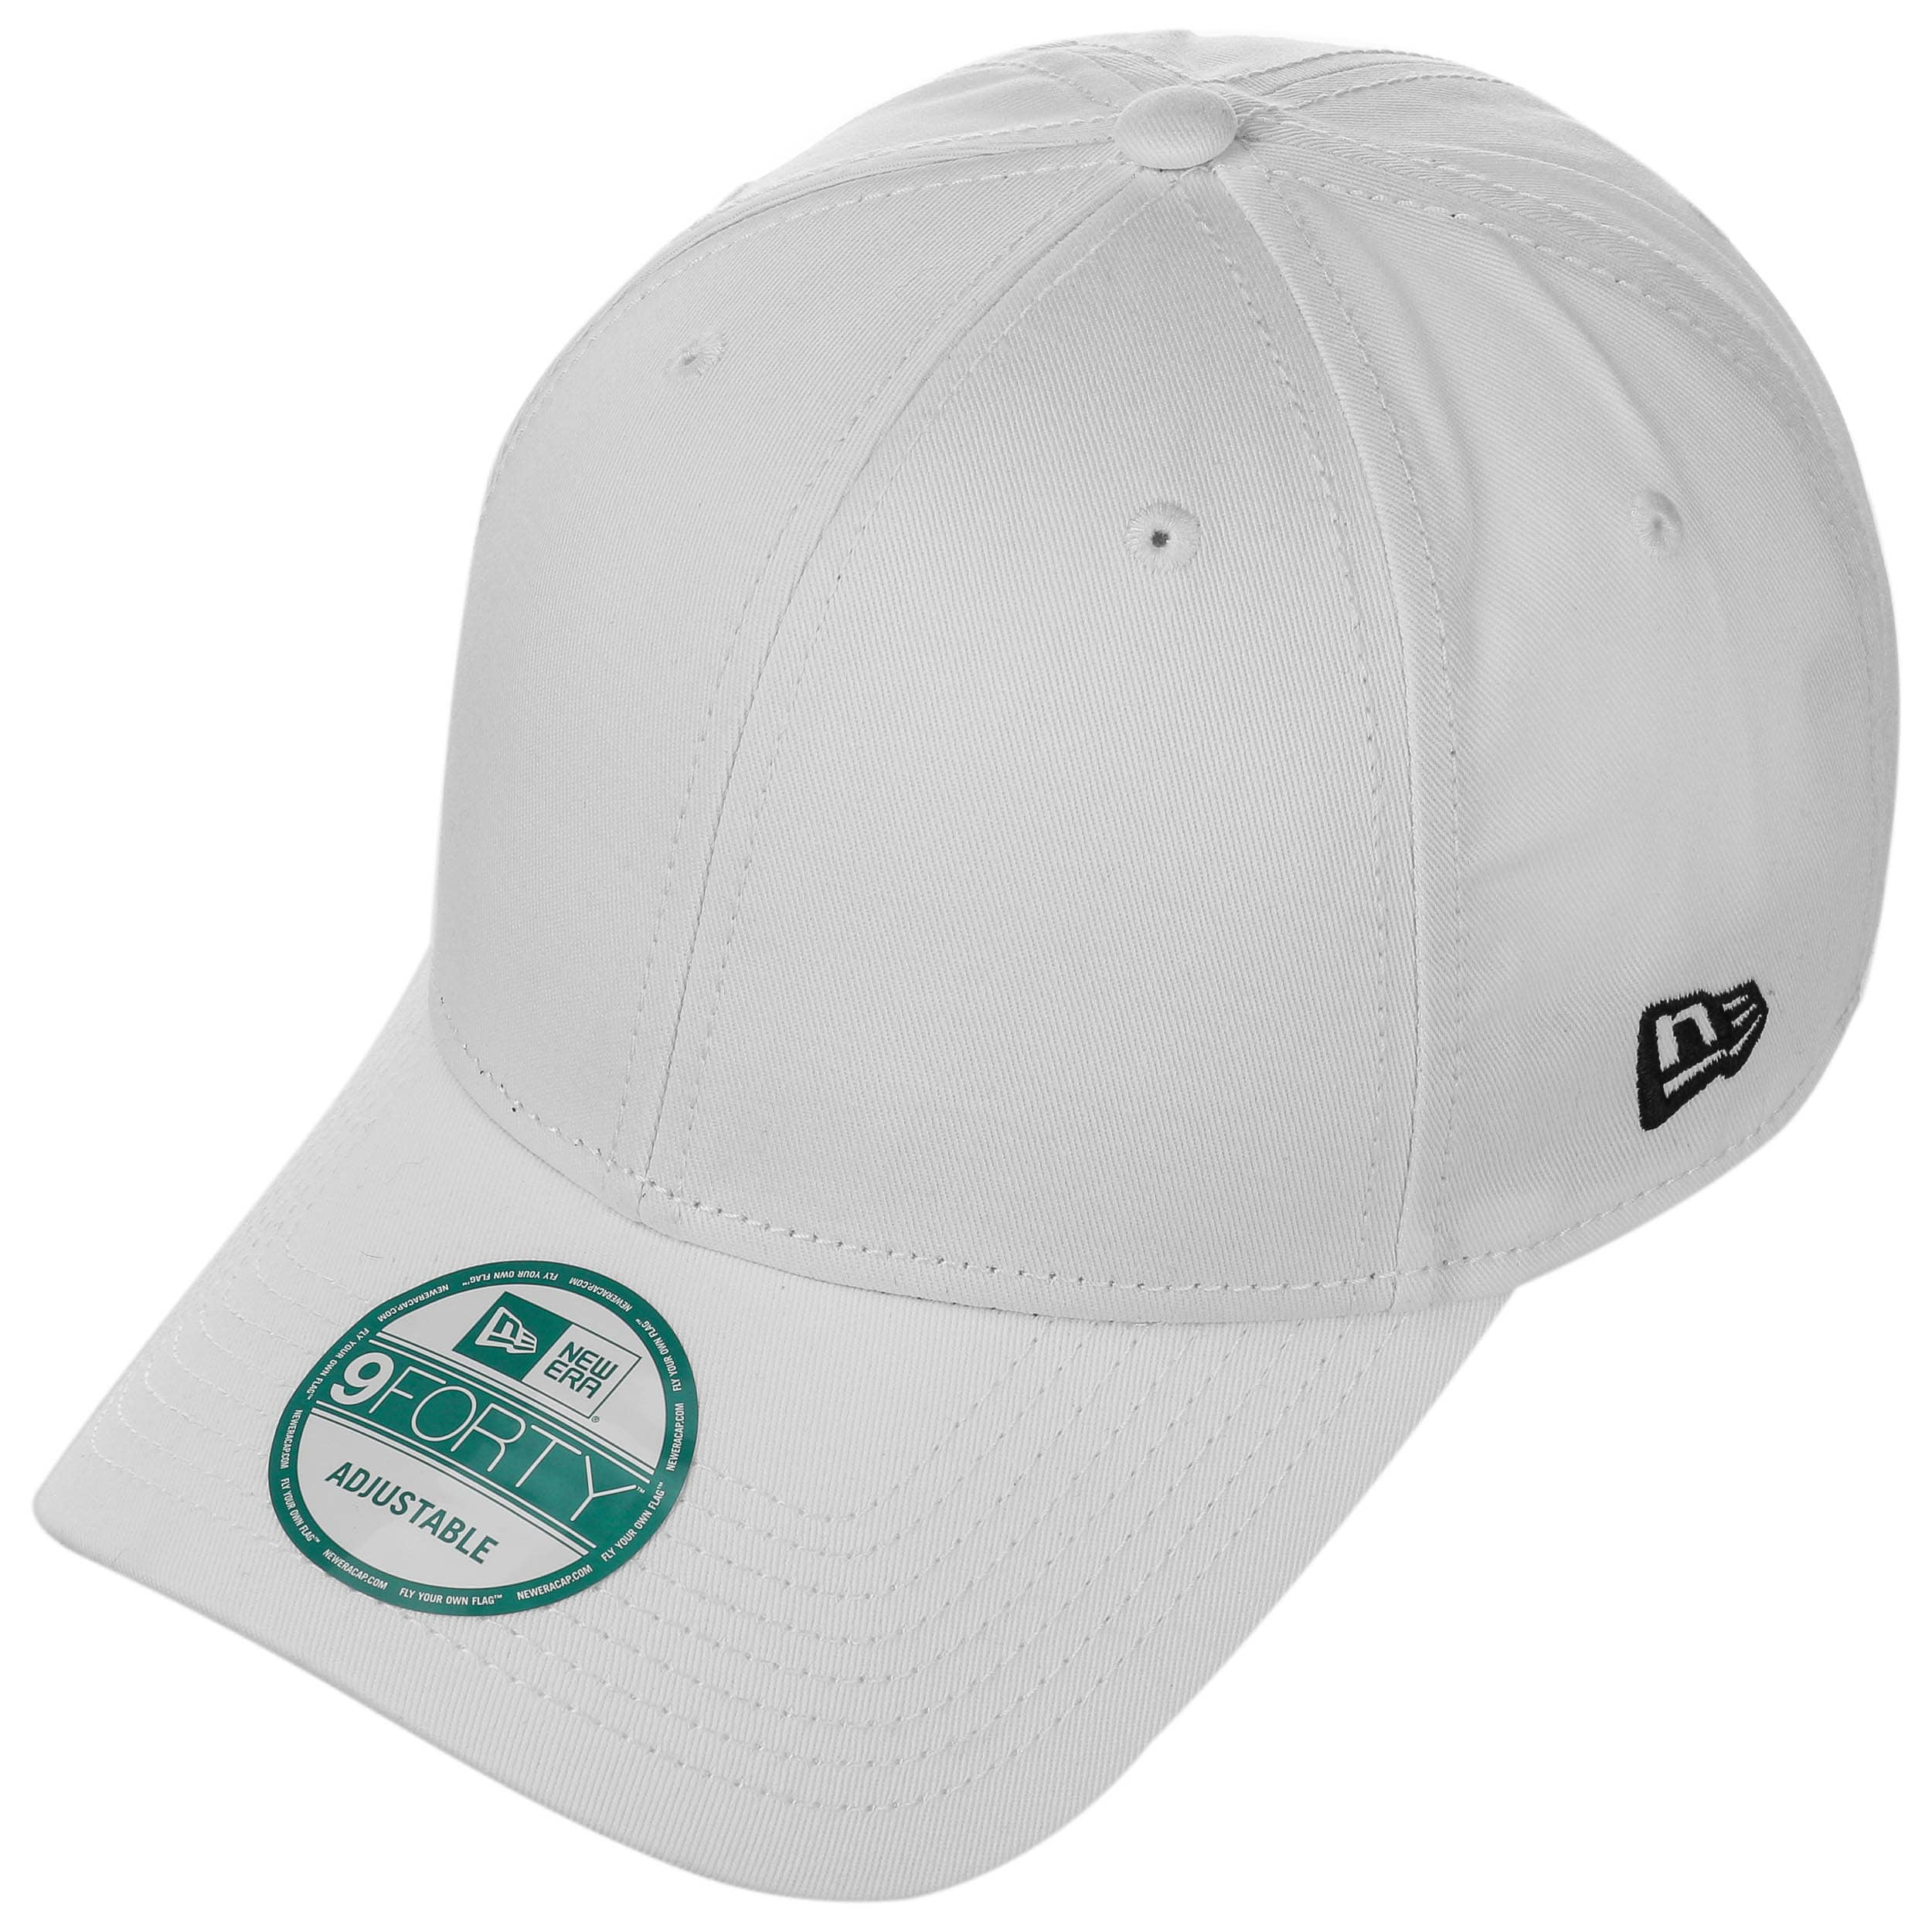 dcddbe4c6211 ... 9Forty Basic Strapback Cap by New Era - white 1 ...